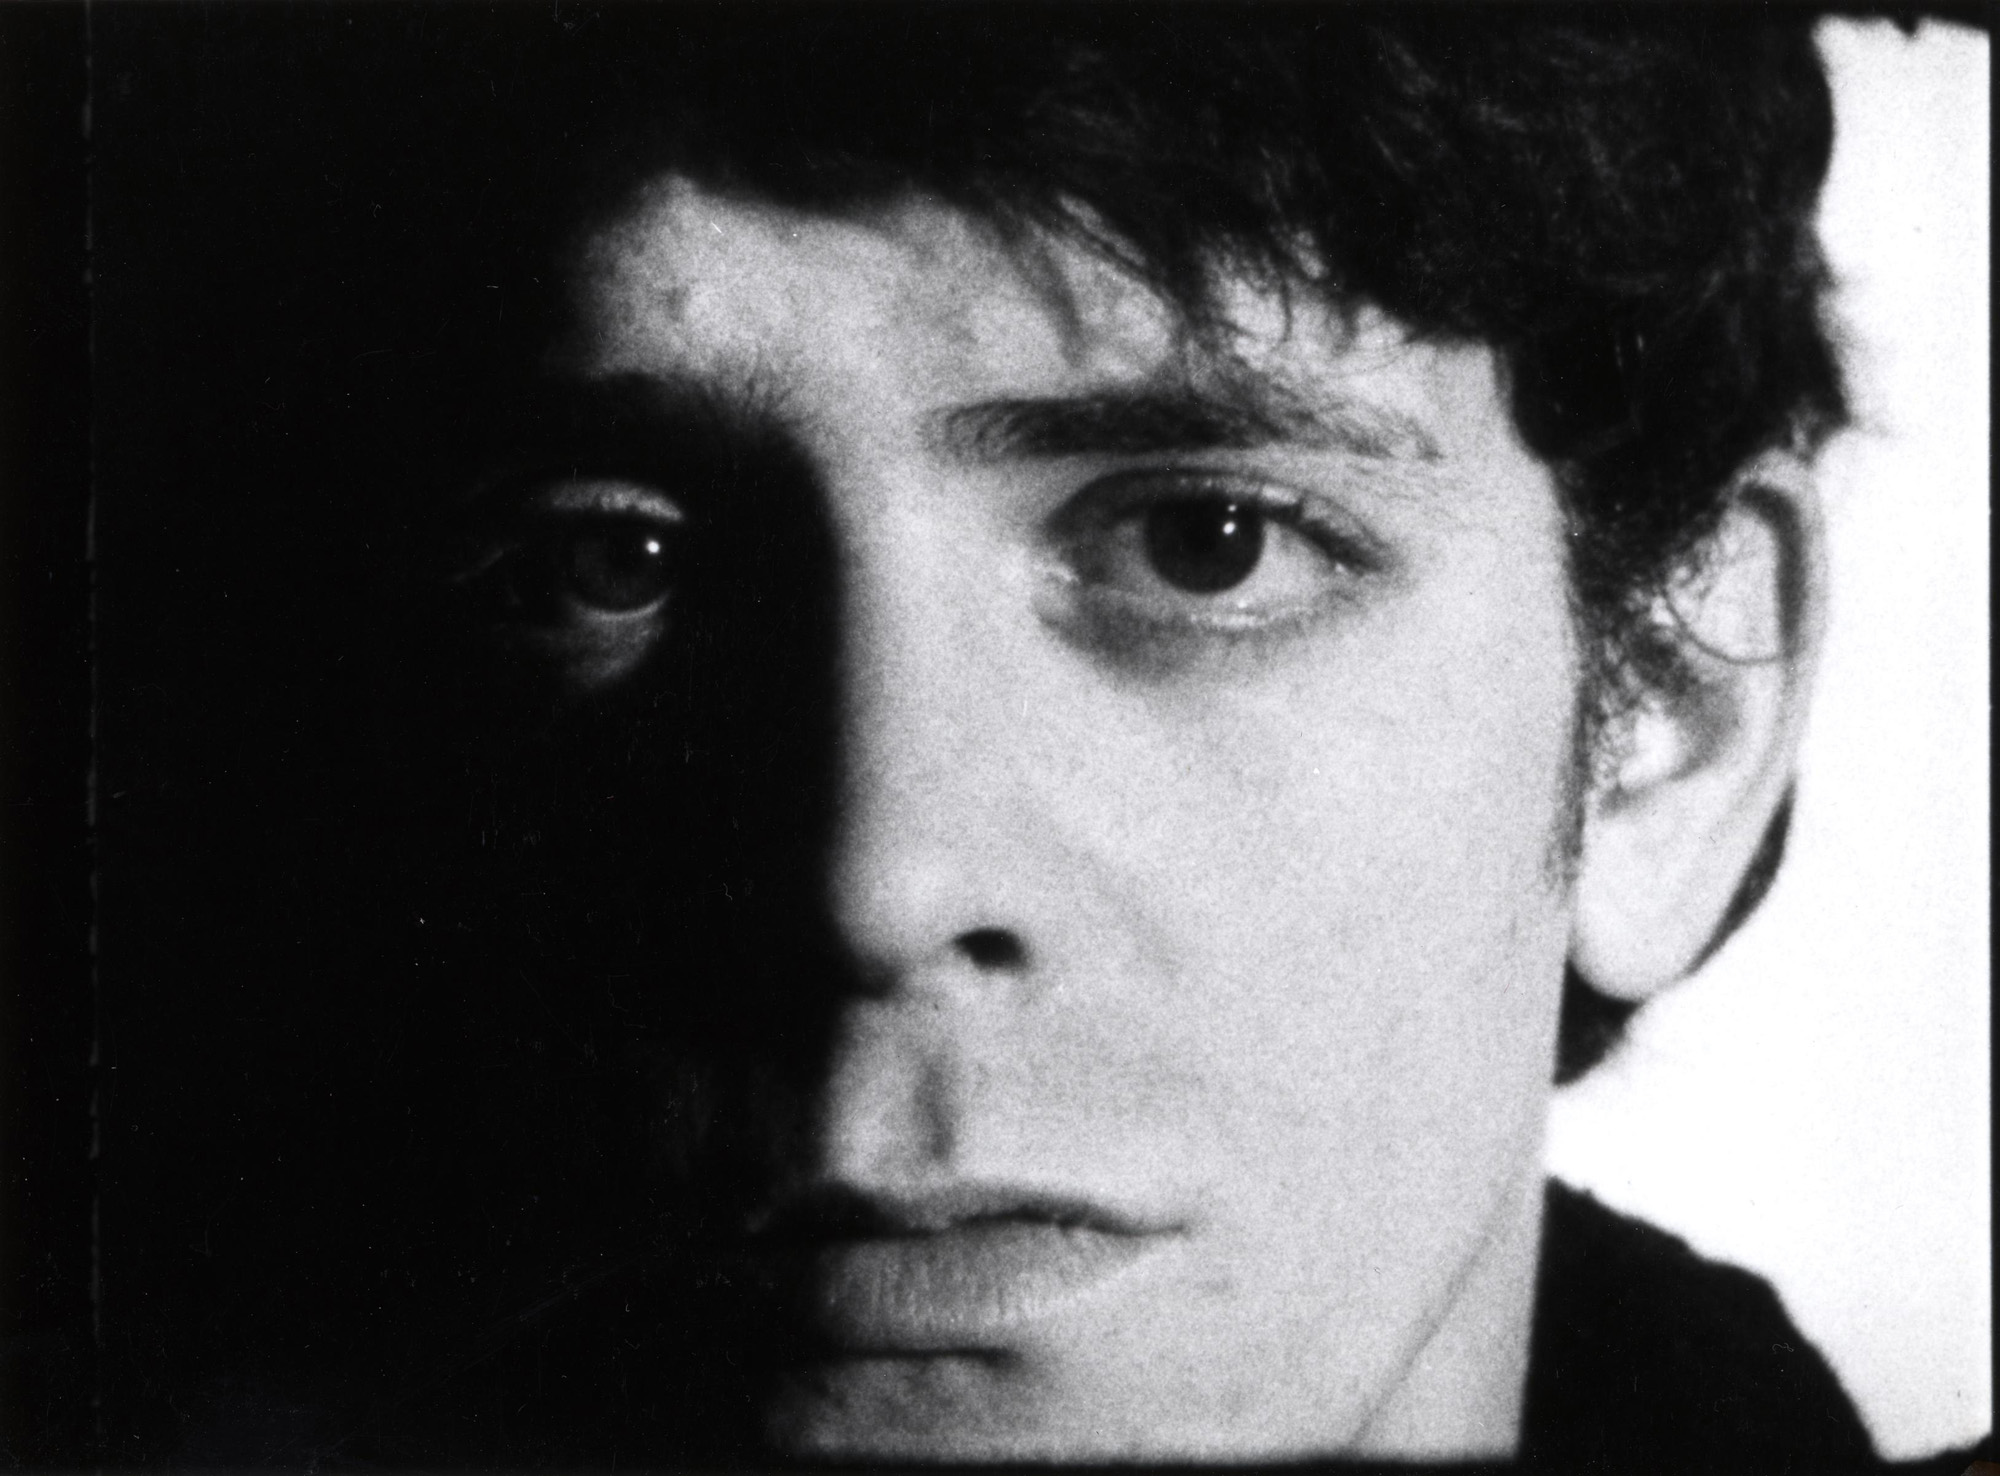 Lou Reed On How To Be As Creative Dynamic And Difficult As Lou Reed